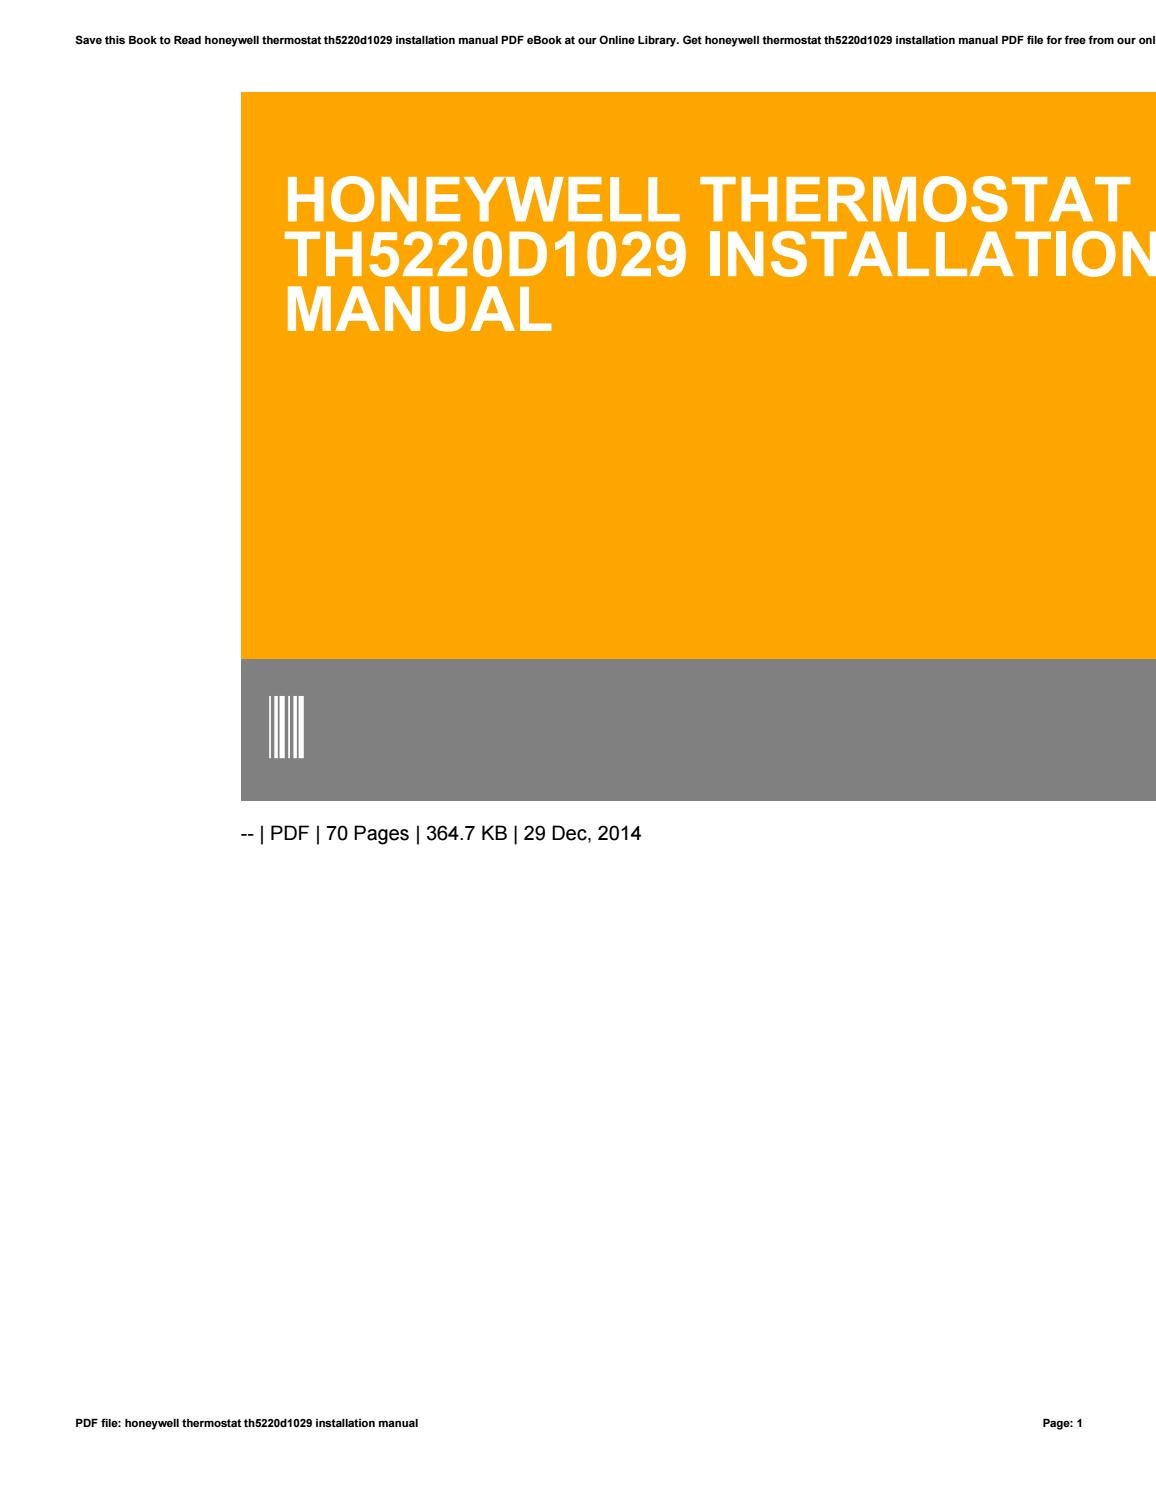 Honeywell Thermostat Th5220d1029 Installation Manual By Munip03asipp Instructions Guide Example 2018 Issuu